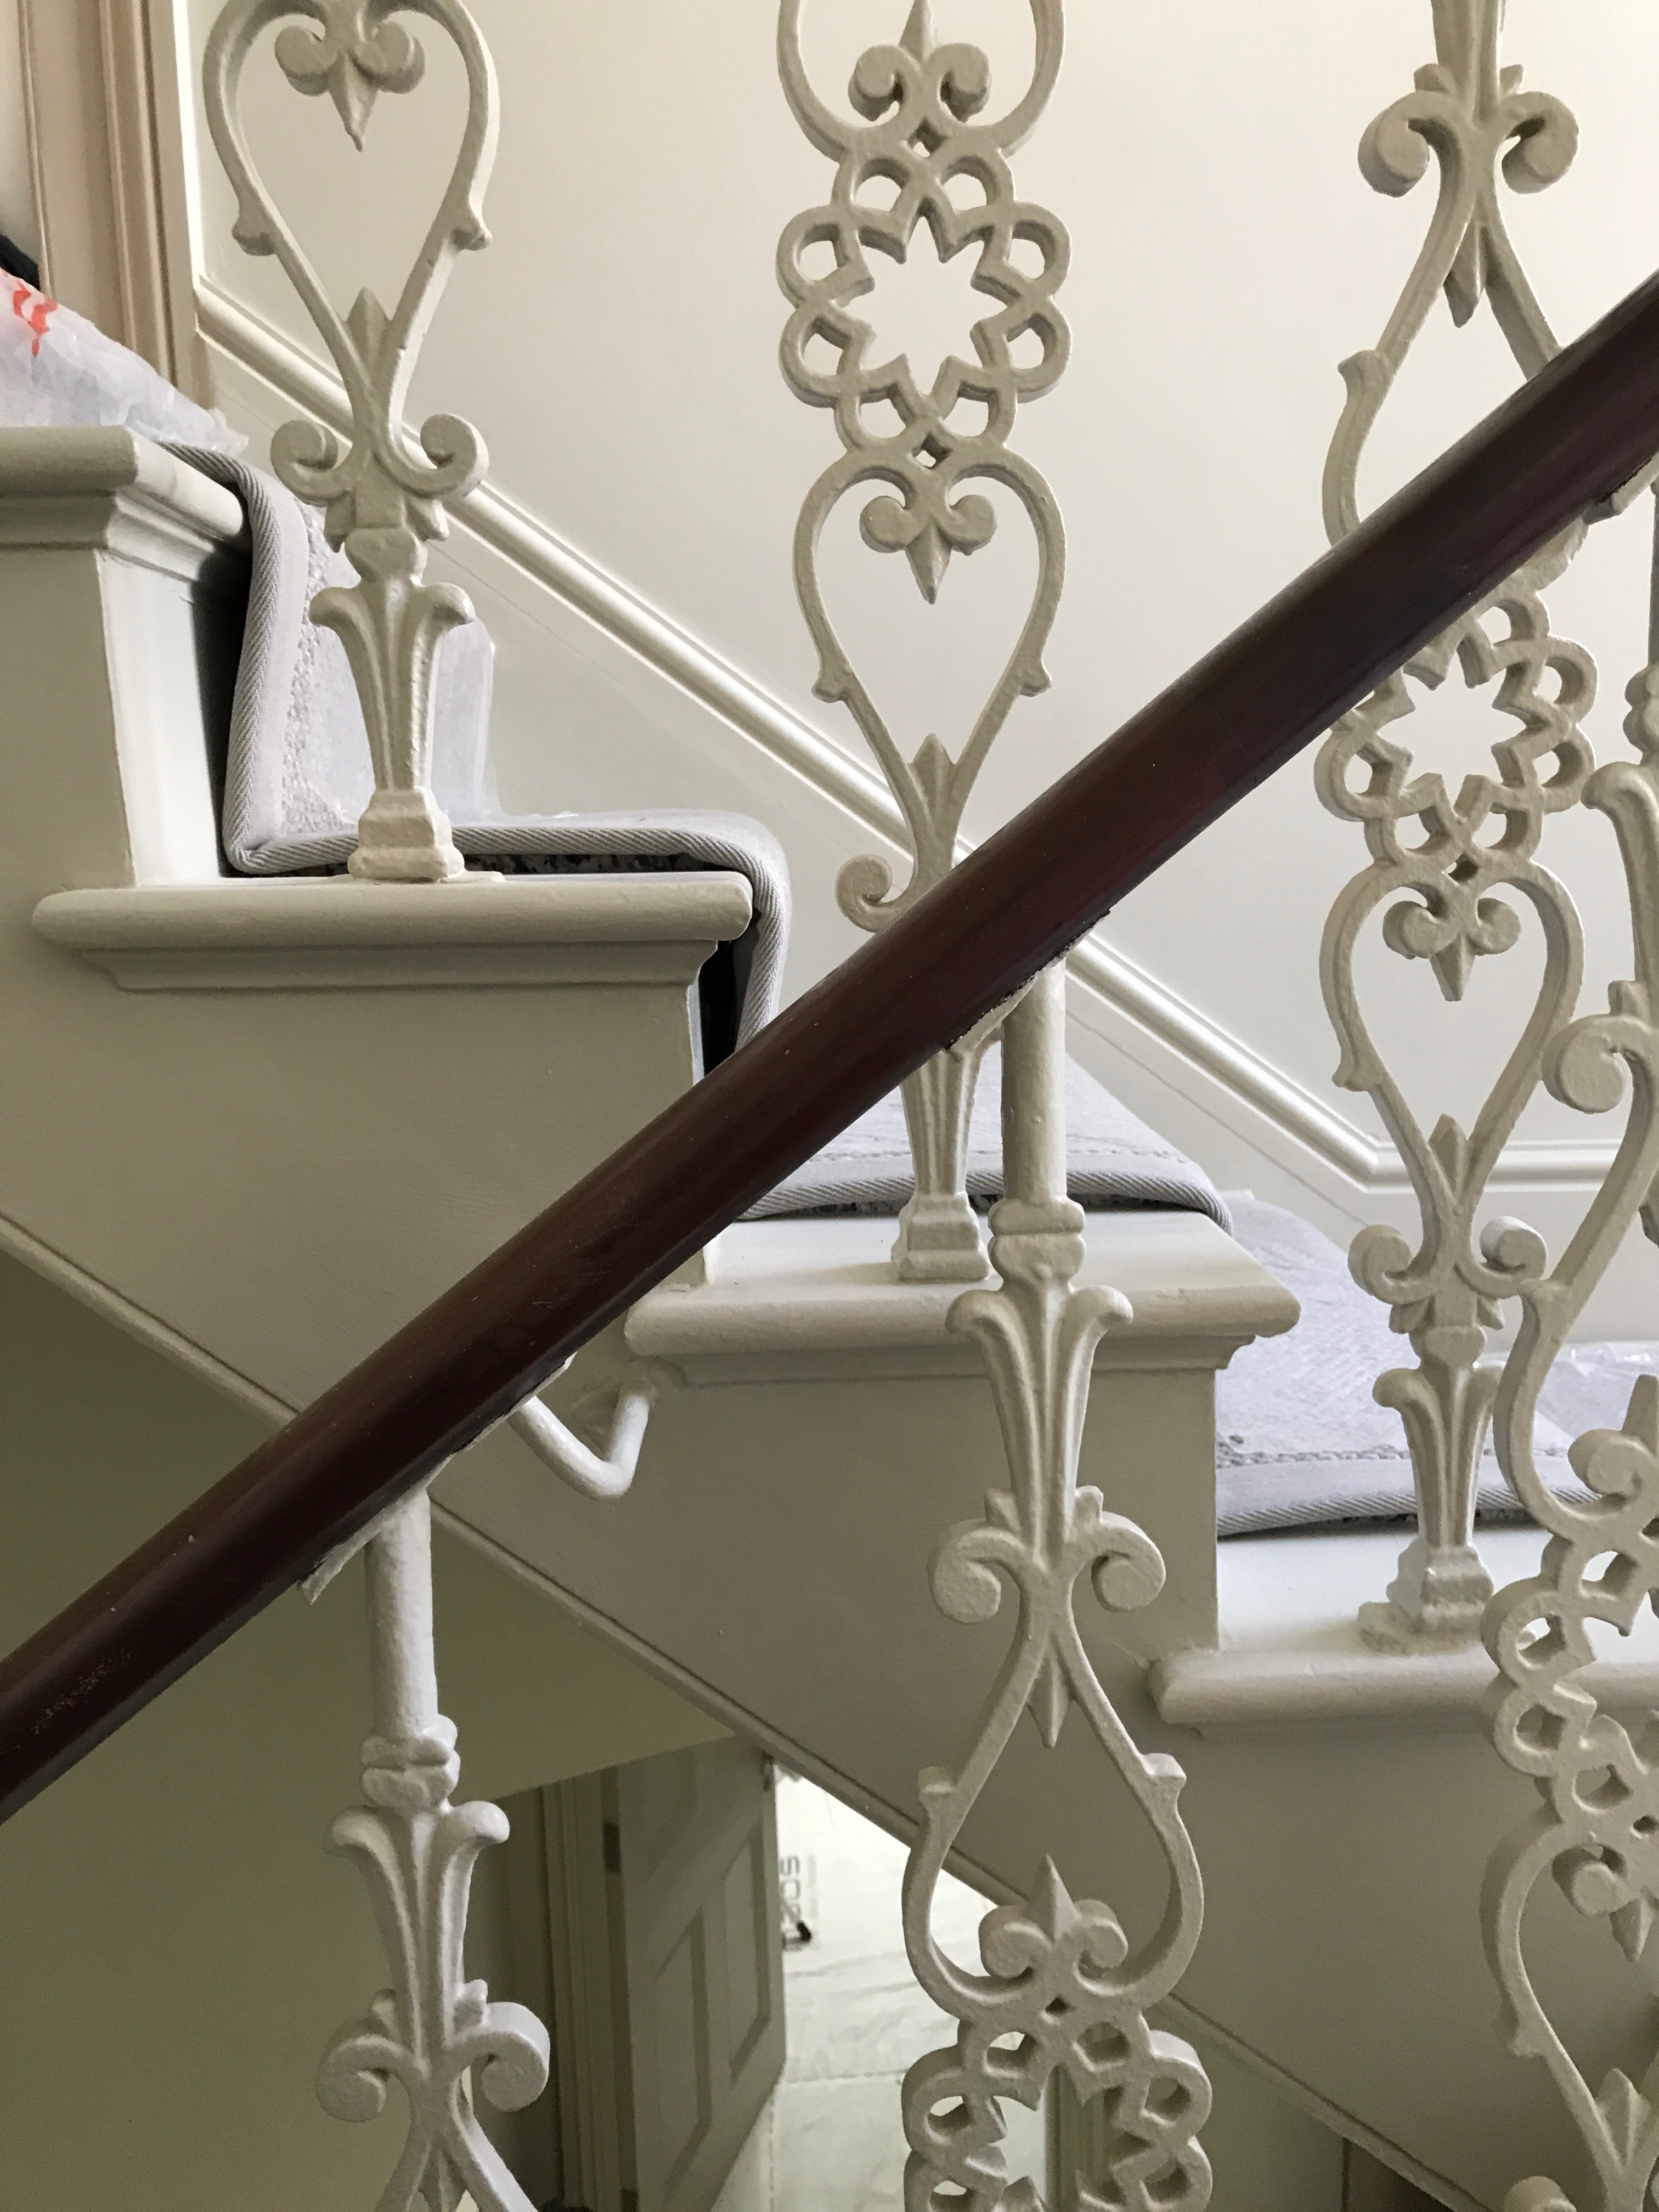 Ornate Iron Balustrade